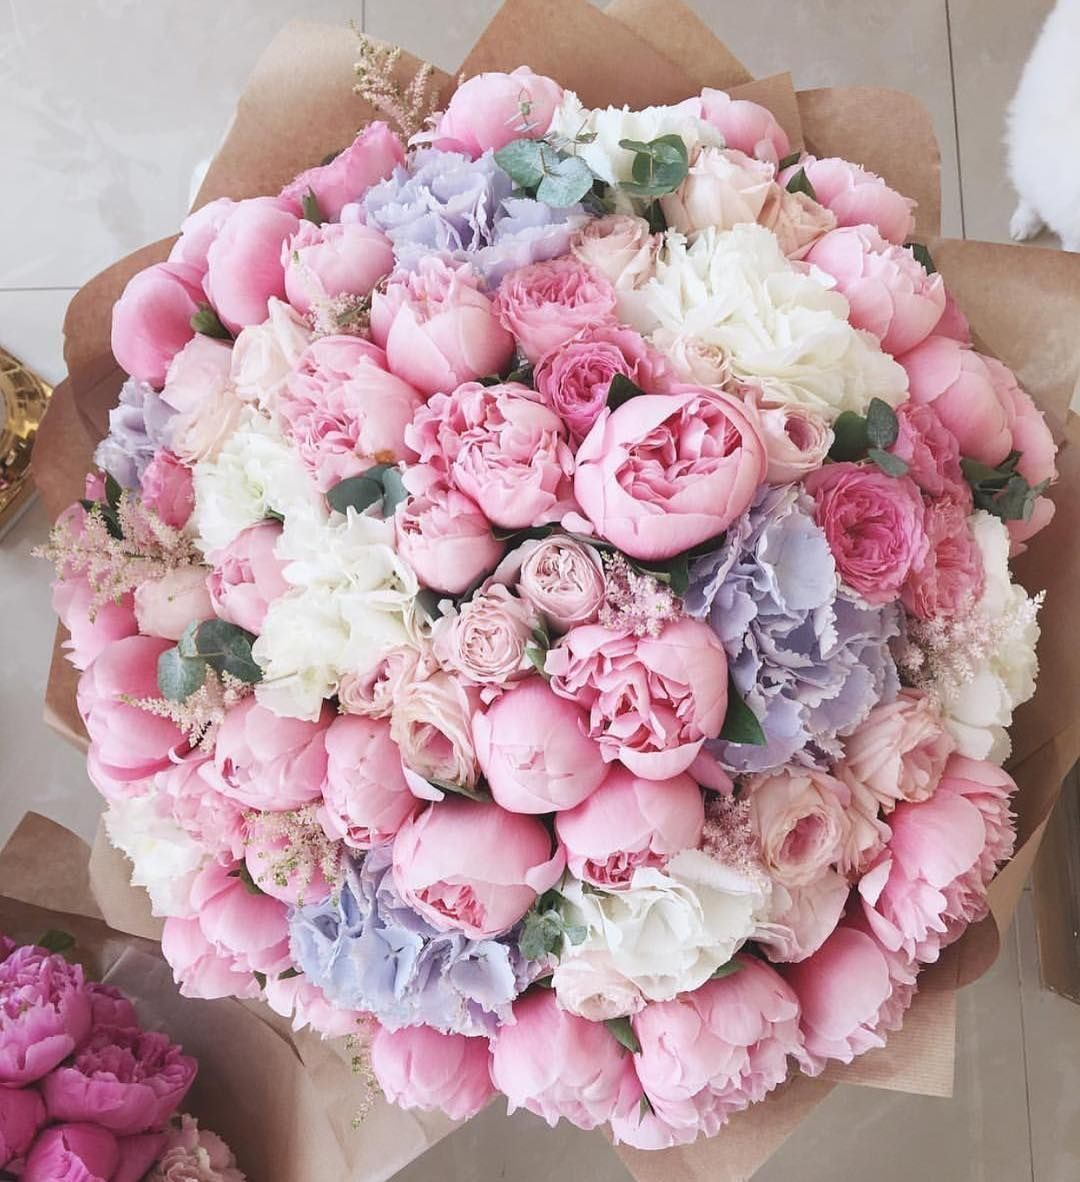 We Can Only Dream Of Receiving A Bouquet This Big And Beautiful This